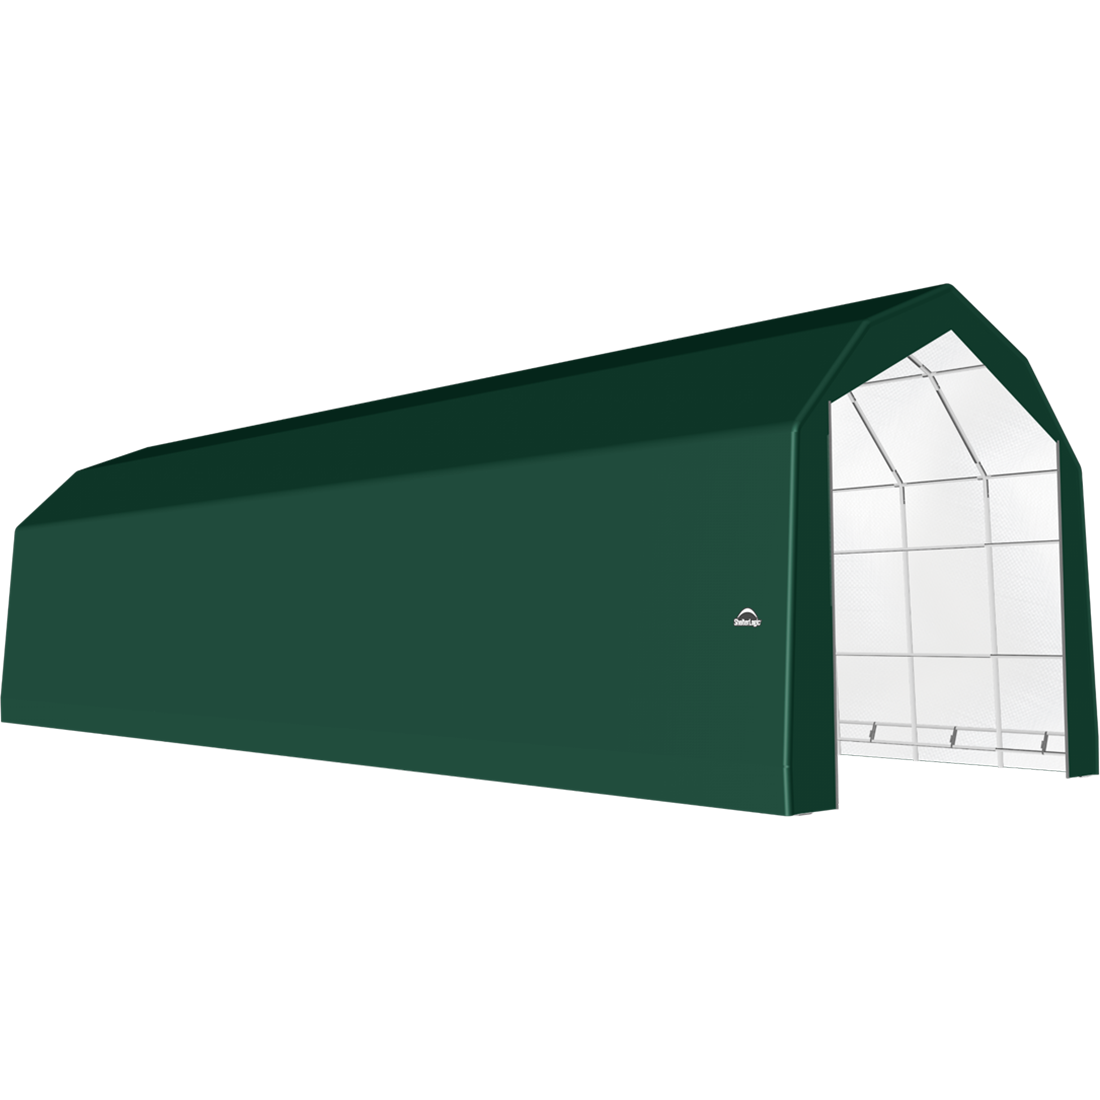 ShelterTech SP Series Barn Shelter, 20 ft. x 68 ft. x 18 ft. Heavy Duty PVC 14.5 oz. Green